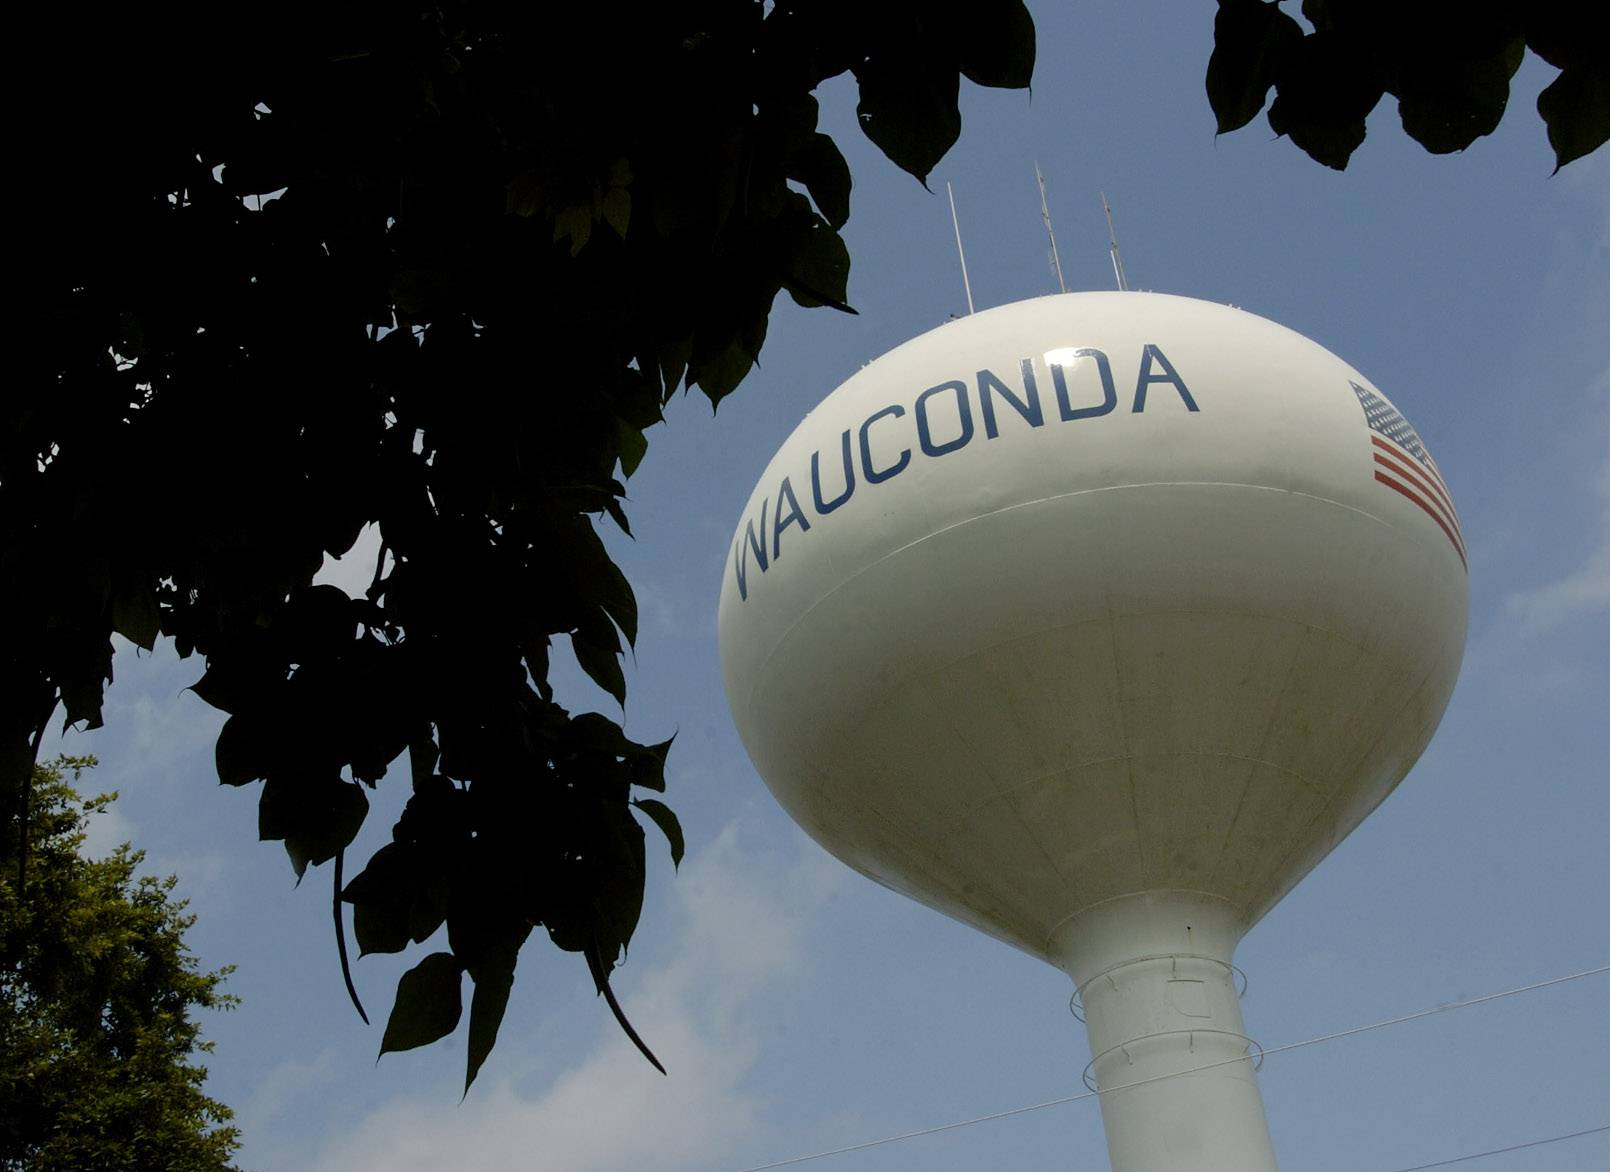 Tuesday's vote by Wauconda officials to partner with neighboring Volo and join the Lake County Joint Action Water Agency is an important -- but not final -- step in a process to provide Lake Michigan drinking water that was nearly derailed a year ago.